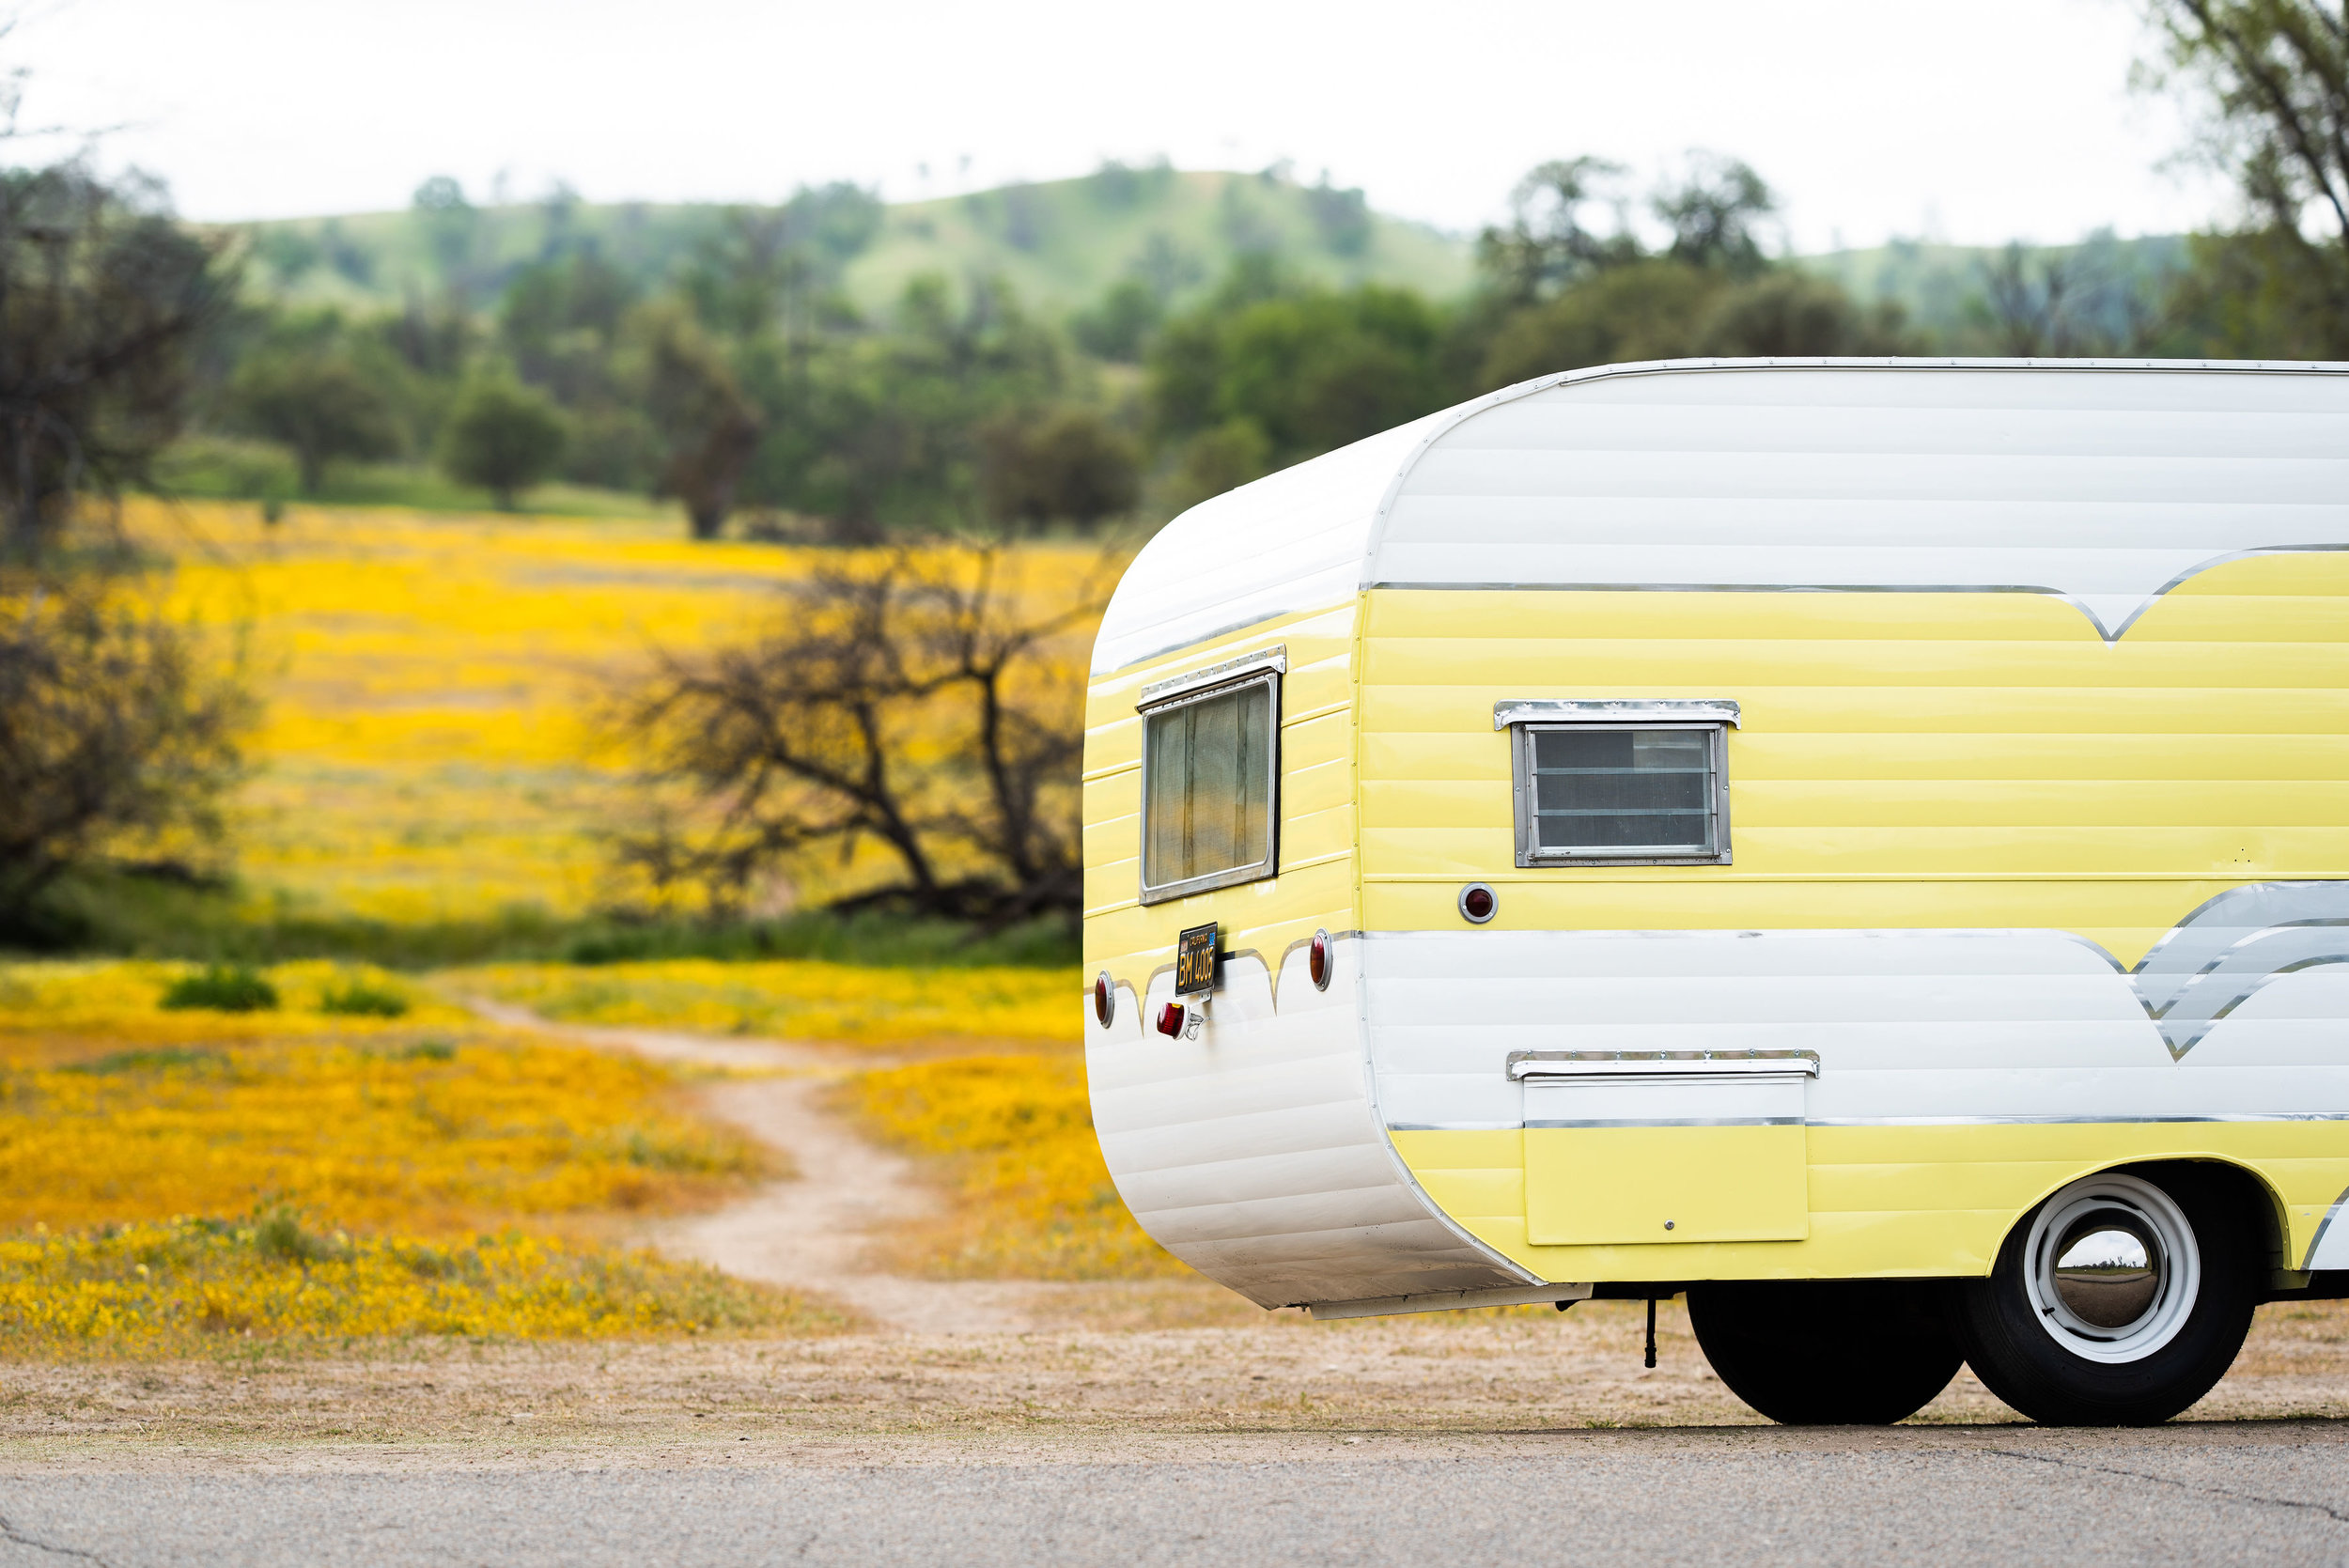 1950'S YELLOW VINTAGE TRAILER AVAILABLE FOR MOVIE AND PRODUCTION RENTALS, FOR BACKSTAGE LOUNGES, FILMING, TV & MOVIES, FOR HAIR AND MAKEUP, COMMERCIAL AND CATALOGUE PHOTO SHOOTS & MORE